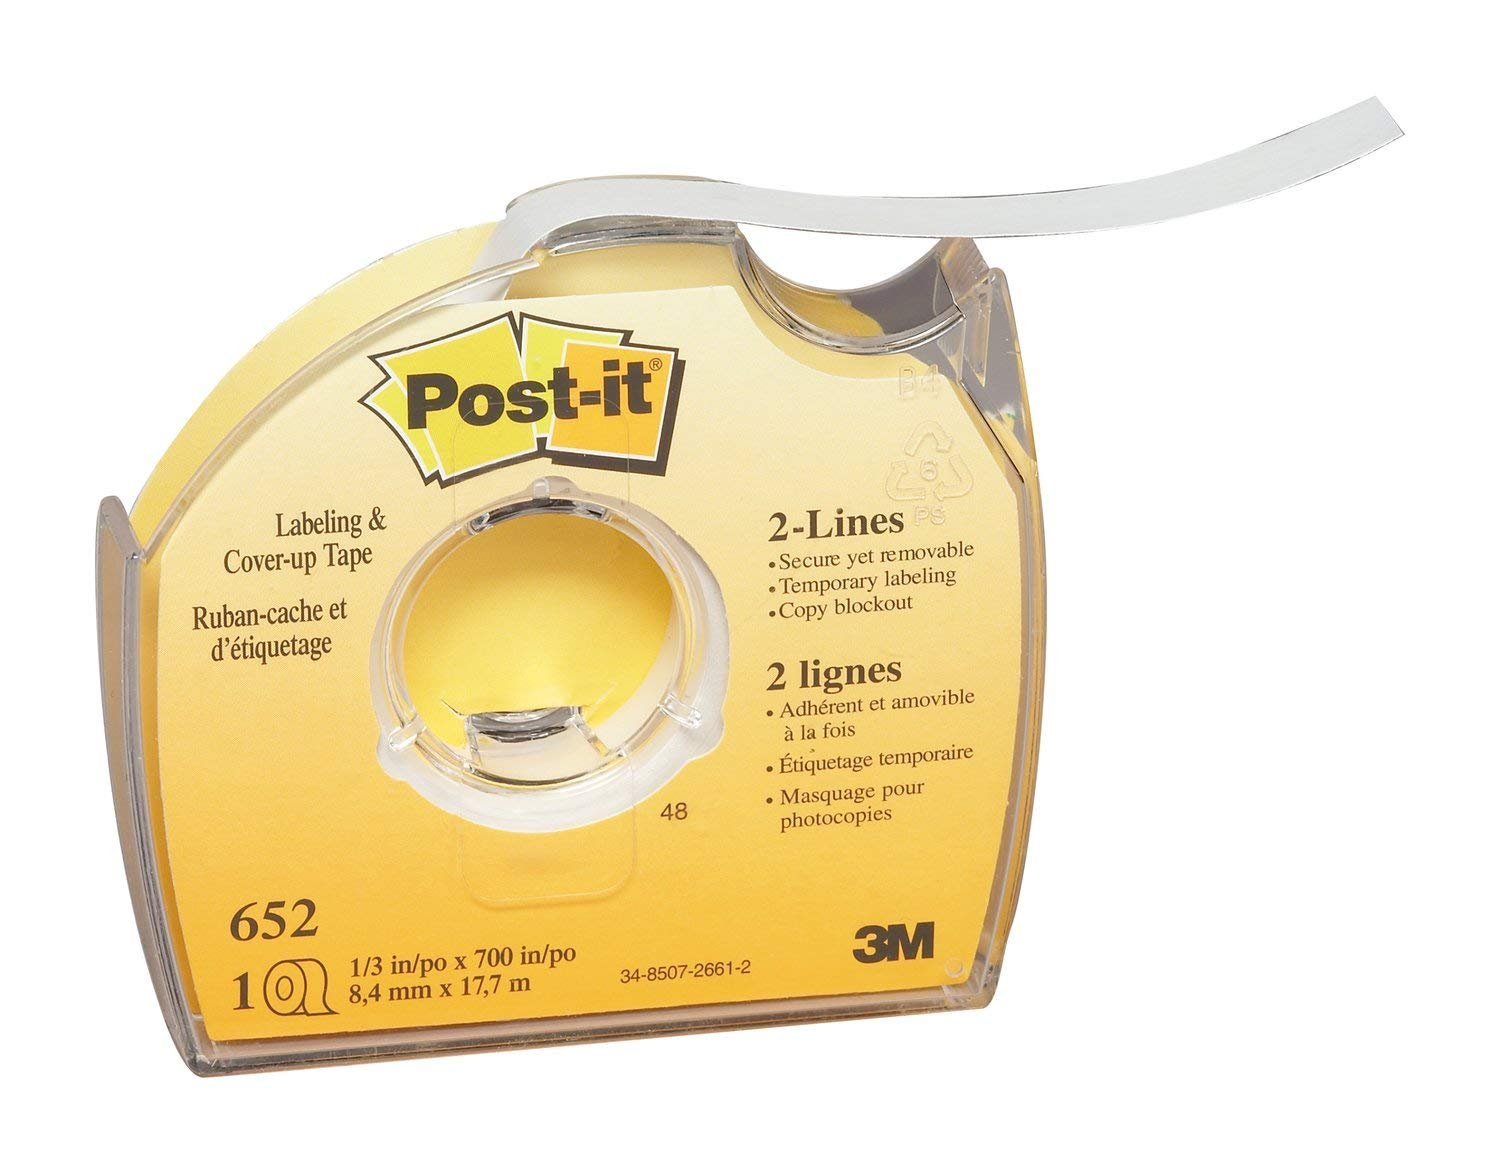 1//3 x 700 Roll Post-it 652 Labeling /& Cover-Up Tape Renewed Non-Refillable